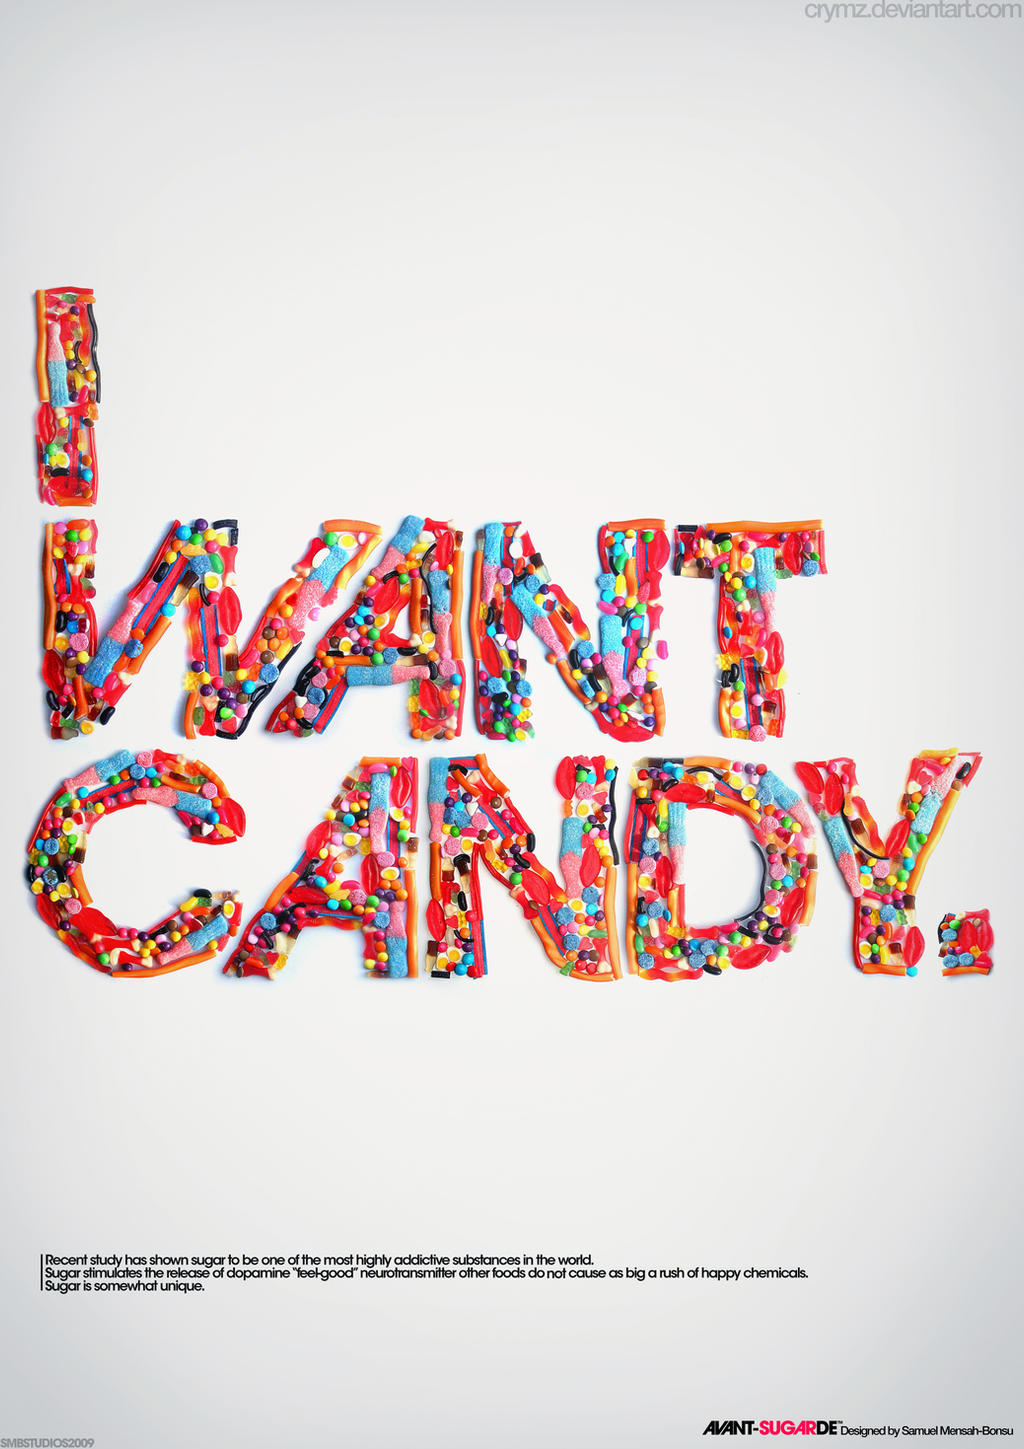 Experimental Typography Candy by crymz